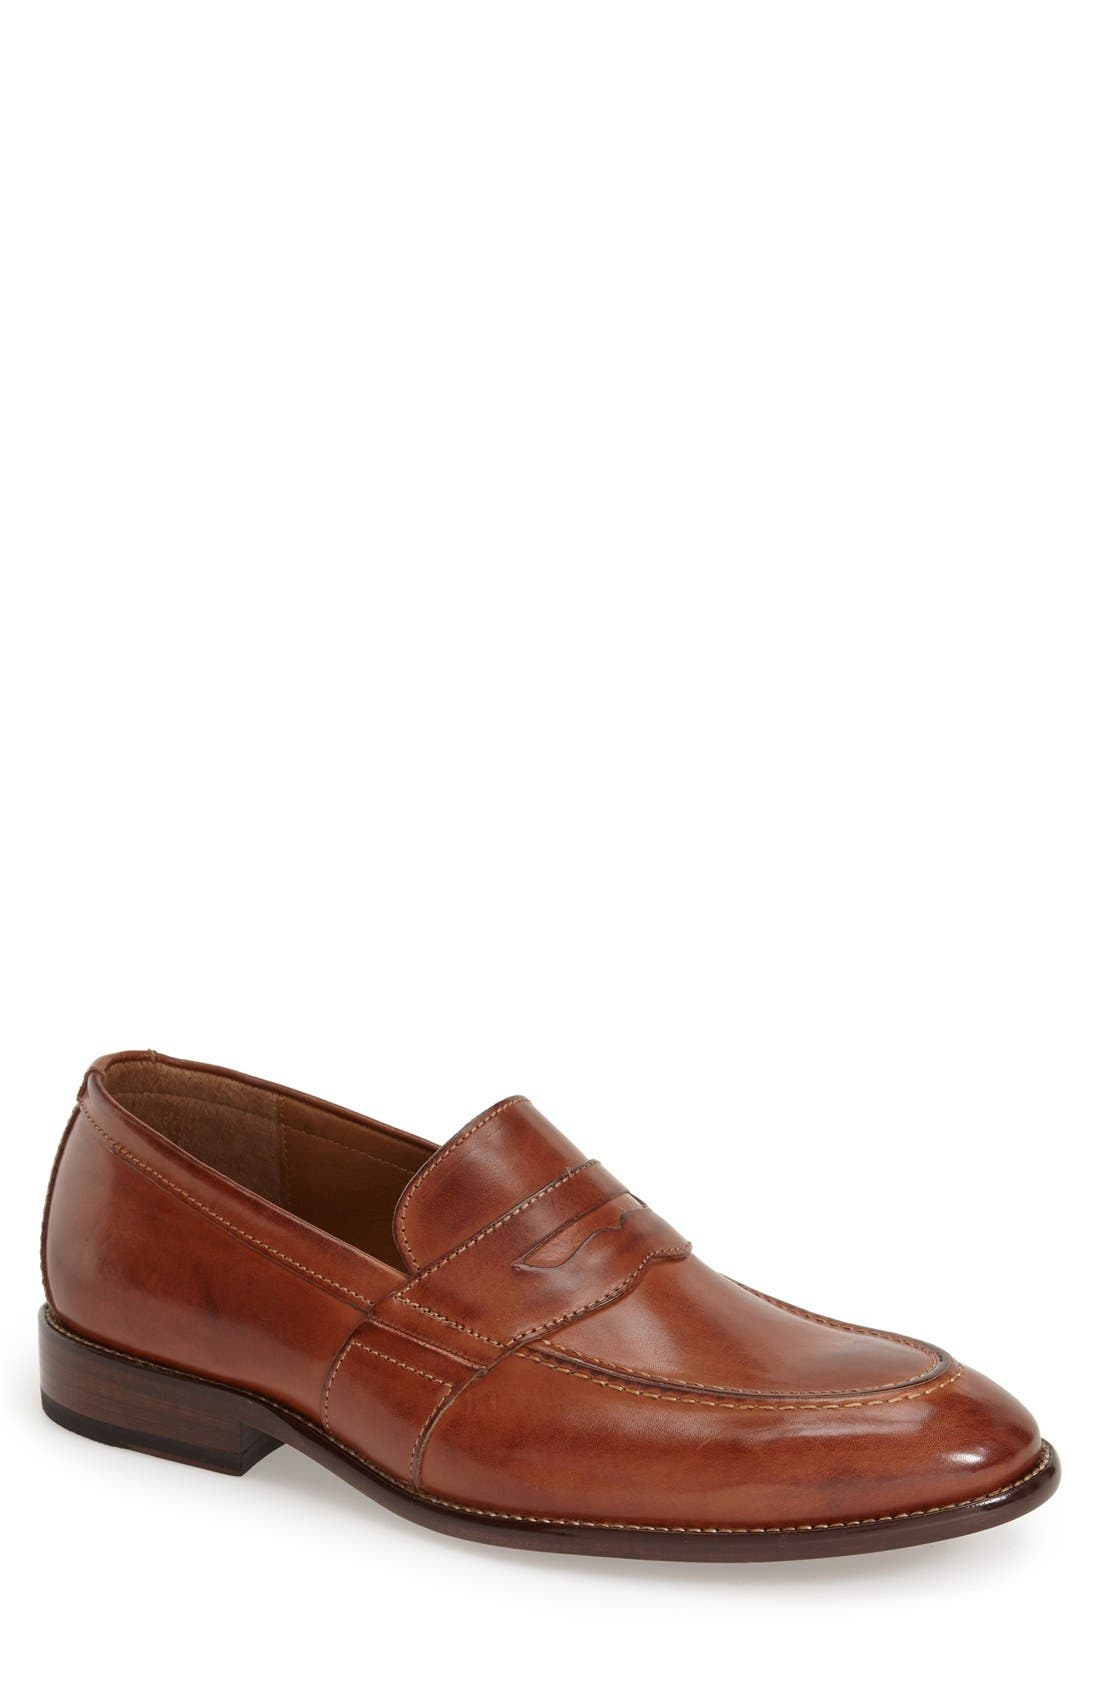 ,                             J & M 1850 'Allred' Penny Loafer,                             Main thumbnail 1, color,                             240